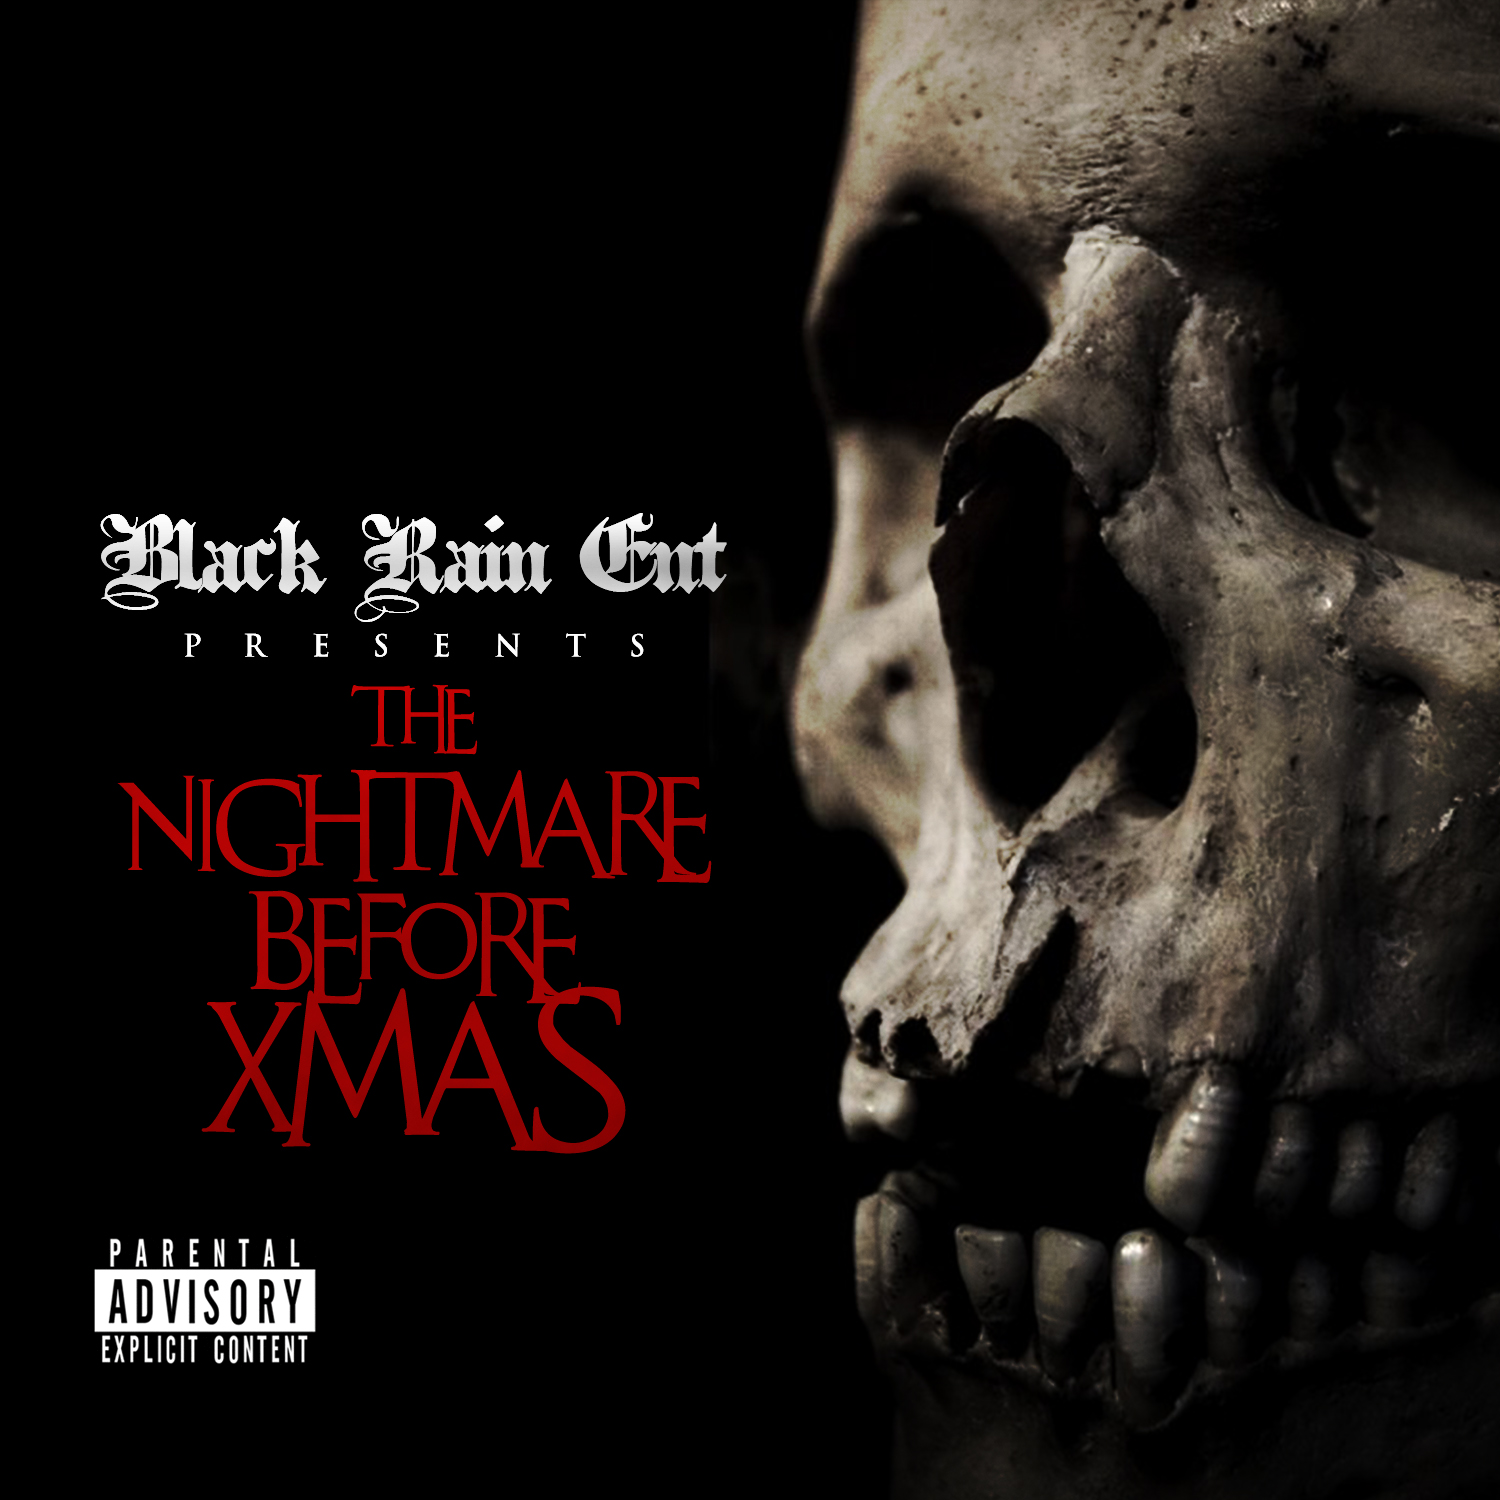 Black Rain Entertainment Presents - The Nightmare Before Xmas